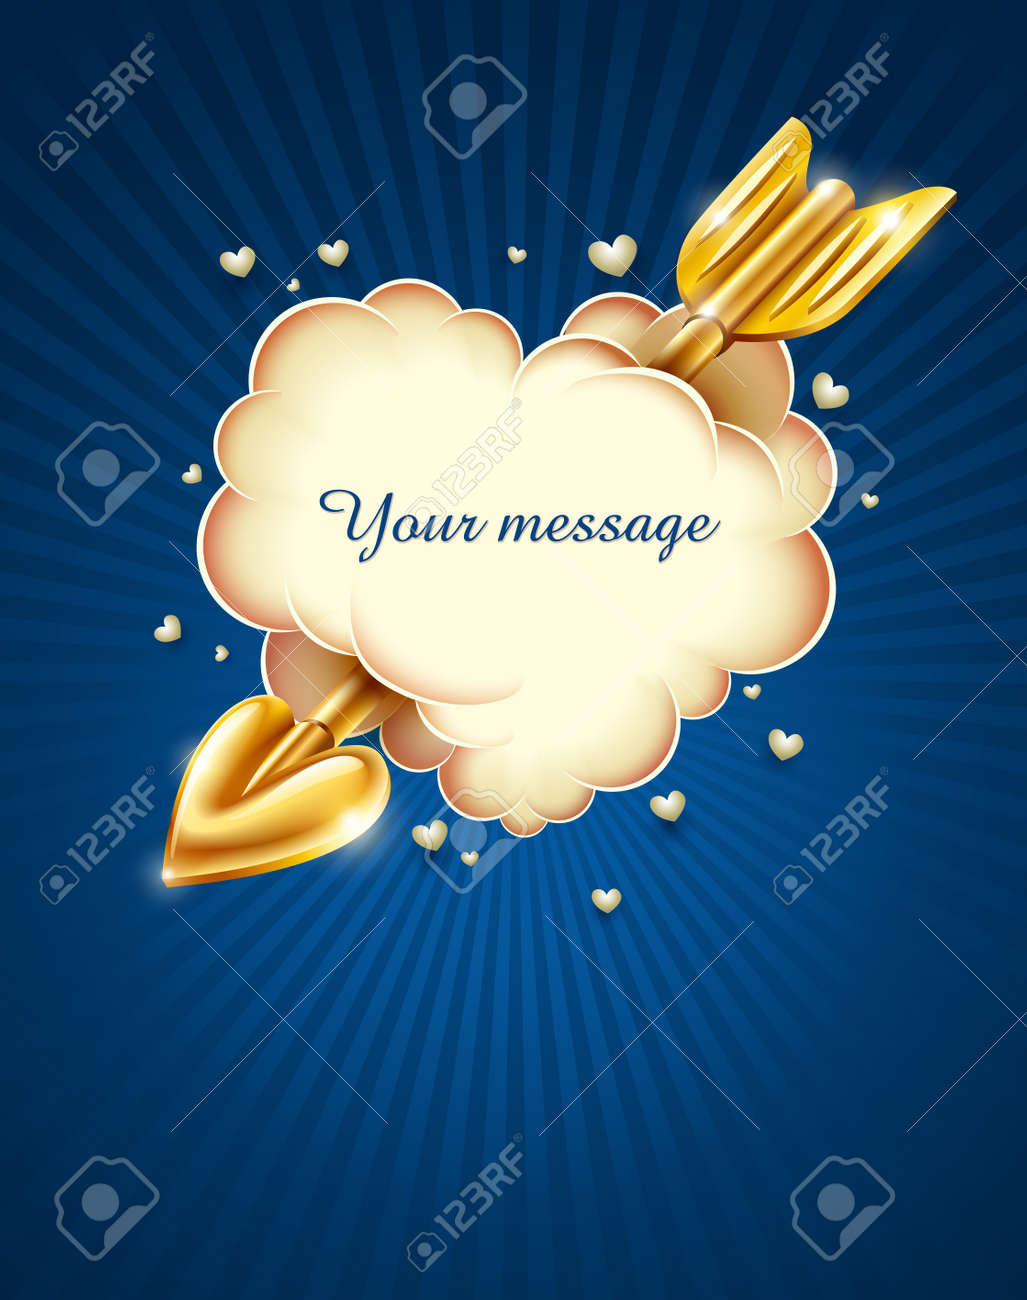 heart cloud strike by gold cupid's arrow Stock Vector - 12101001